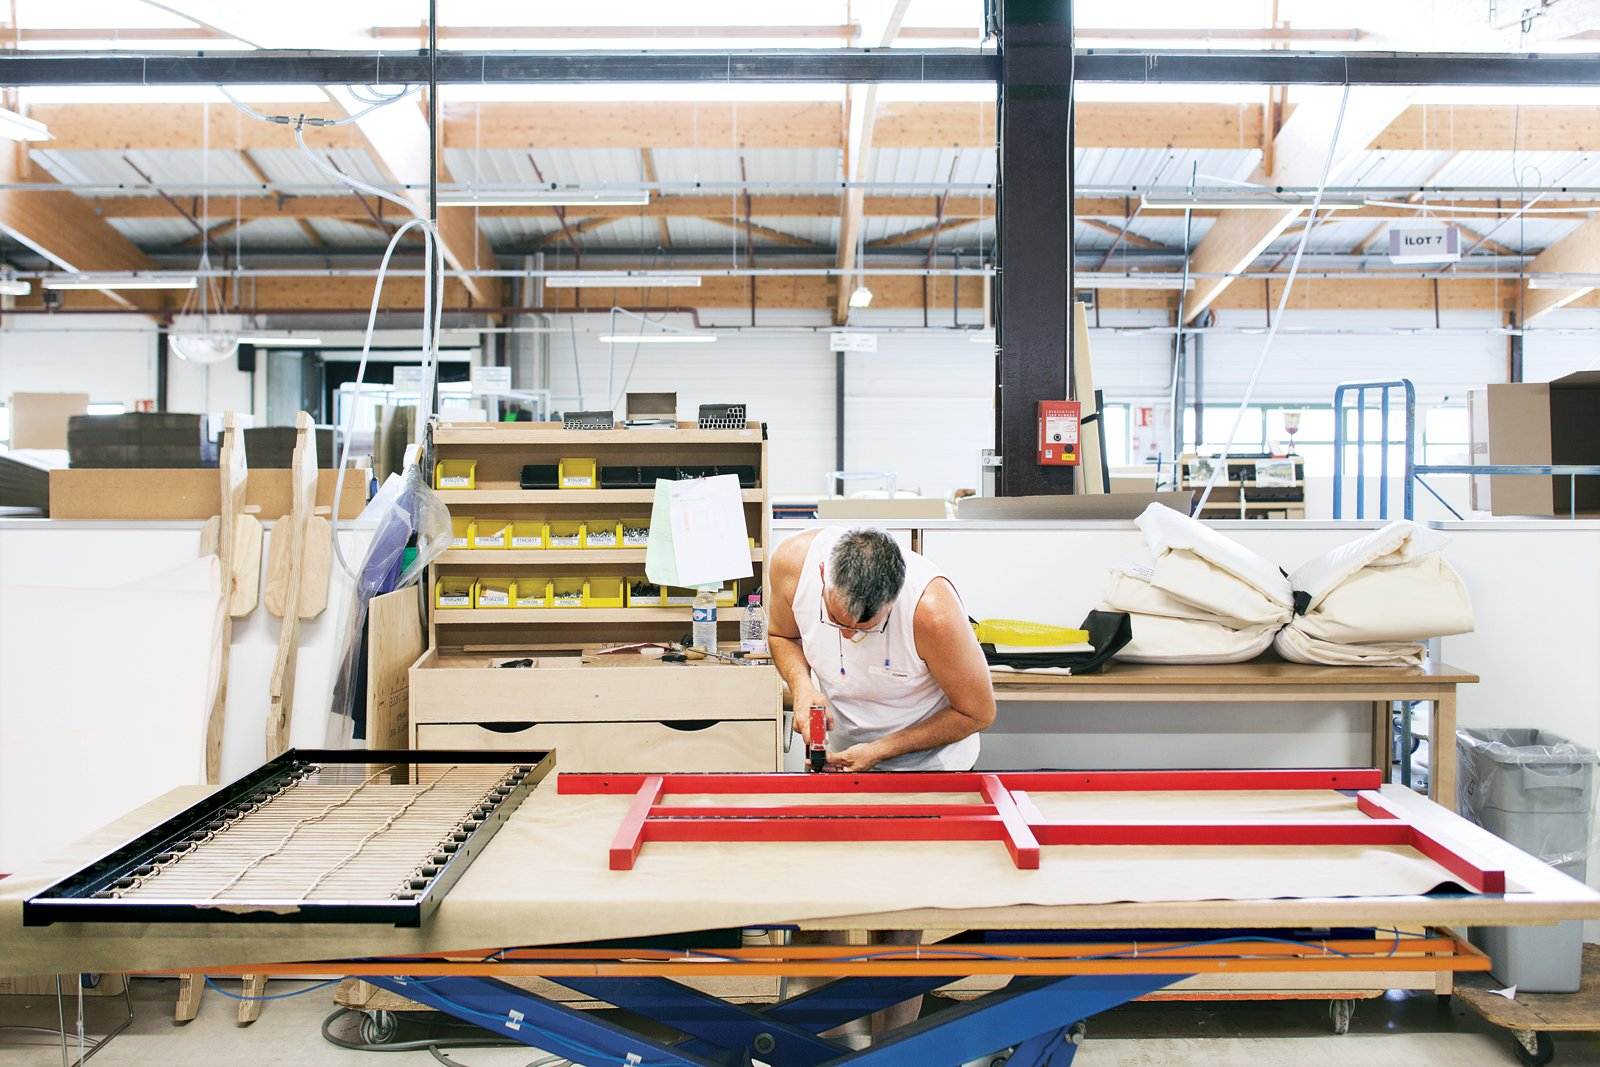 Any wood waste generated in Ligne Roset's manufacturing process is used to heat the company's factories in the winter. Leather scraps are sold to make boots and wallets.